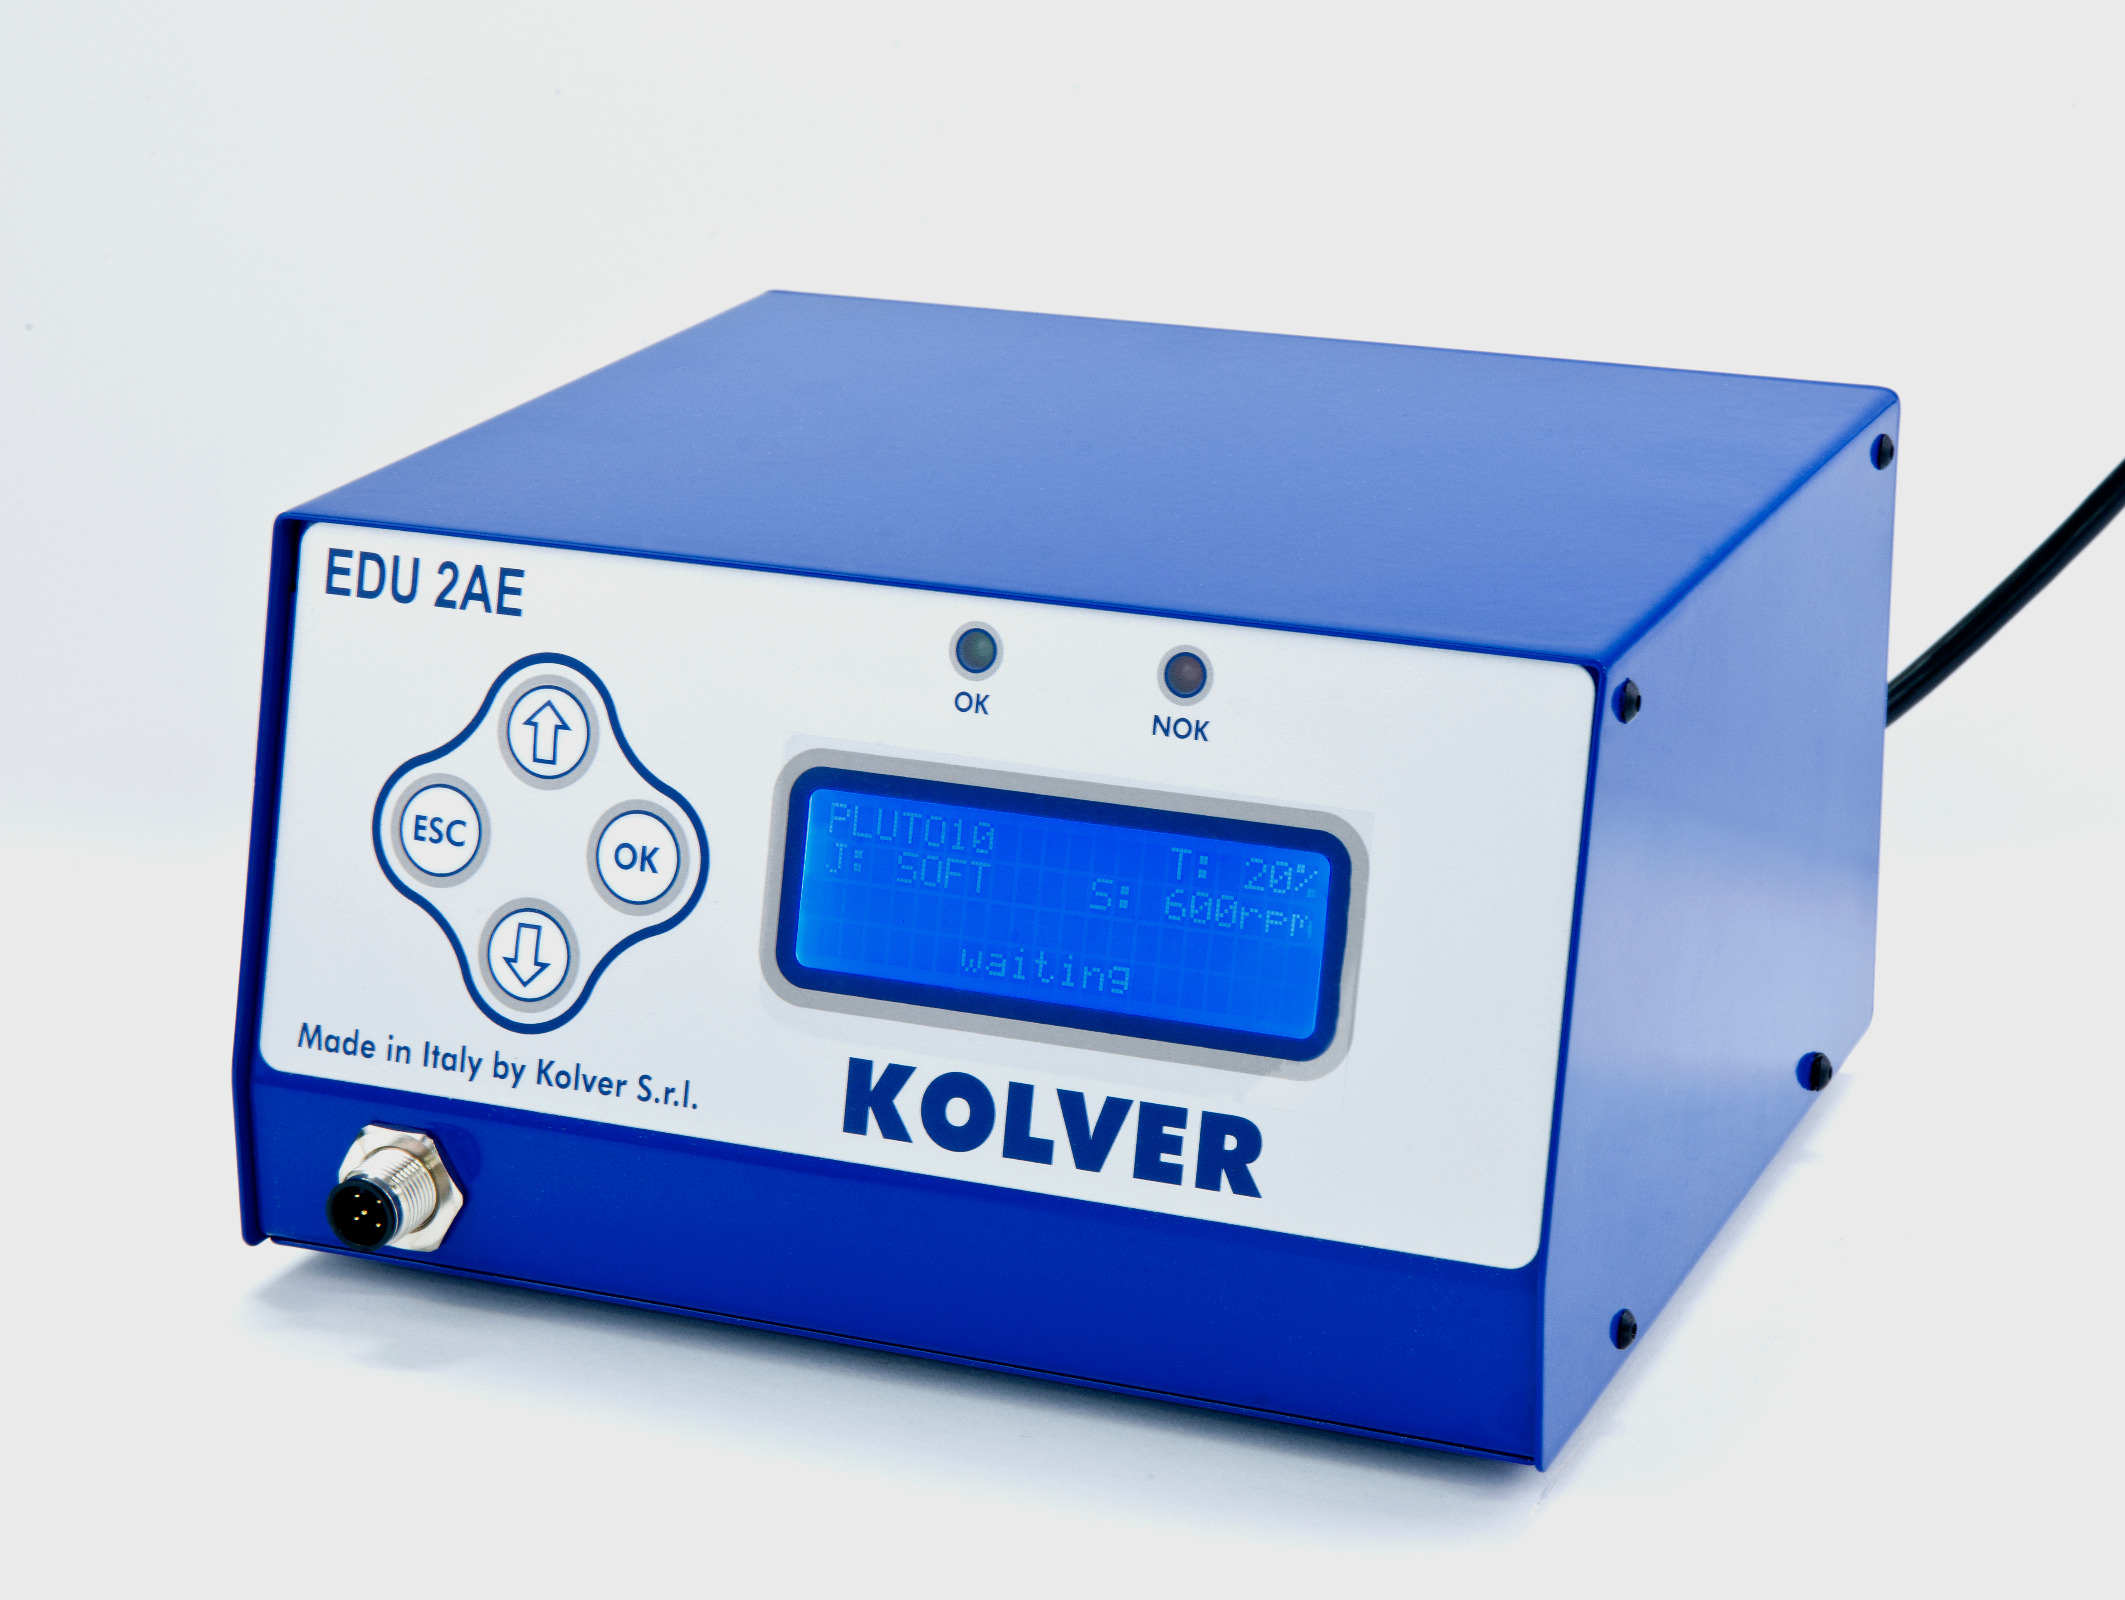 Kolver-screwdriver-controller-EDU2AE